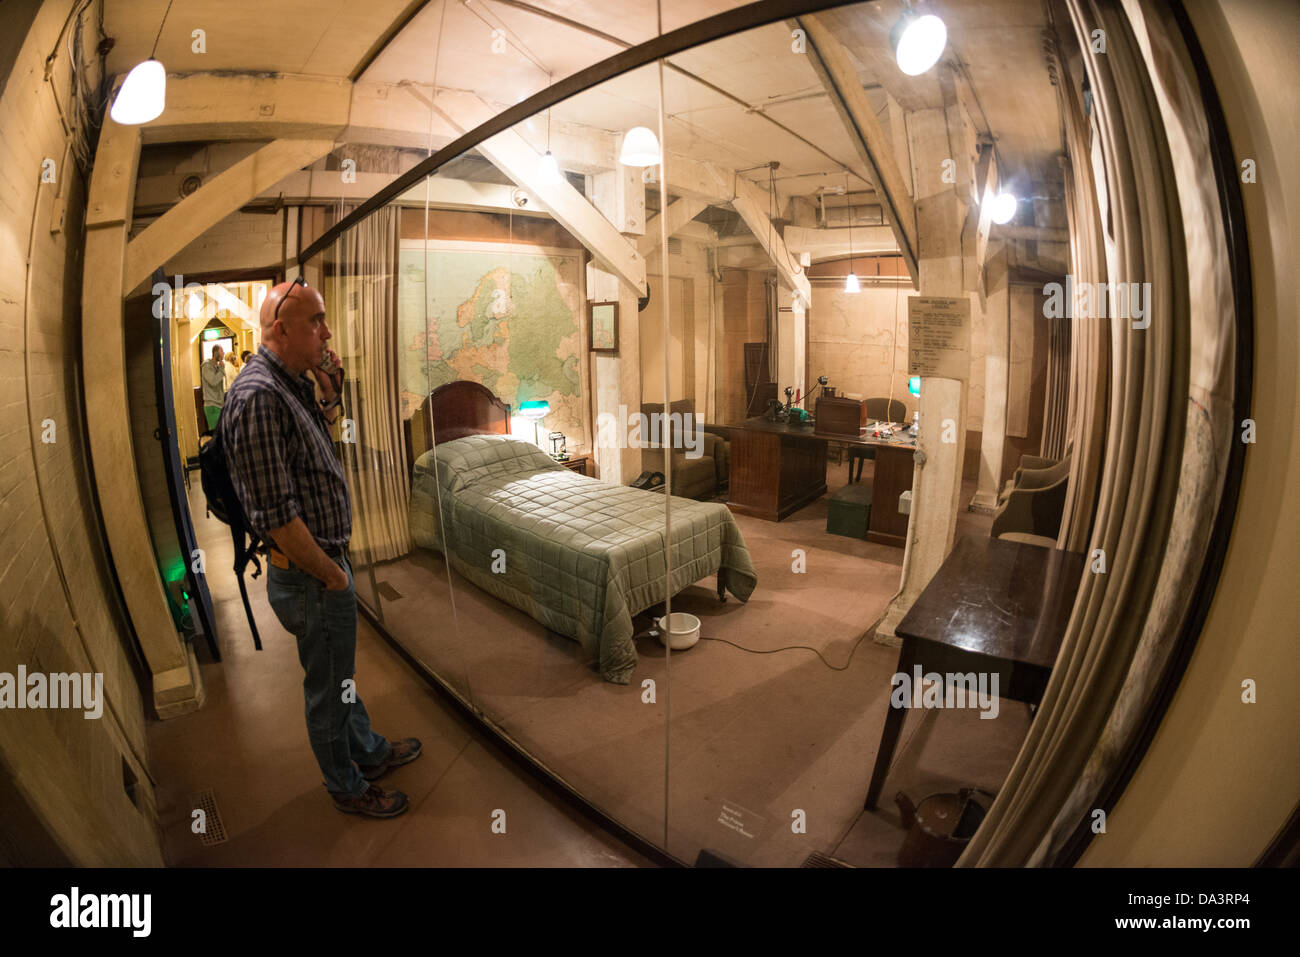 Cabinet War Museum At The Churchill War Rooms In London The Museum One Of Five